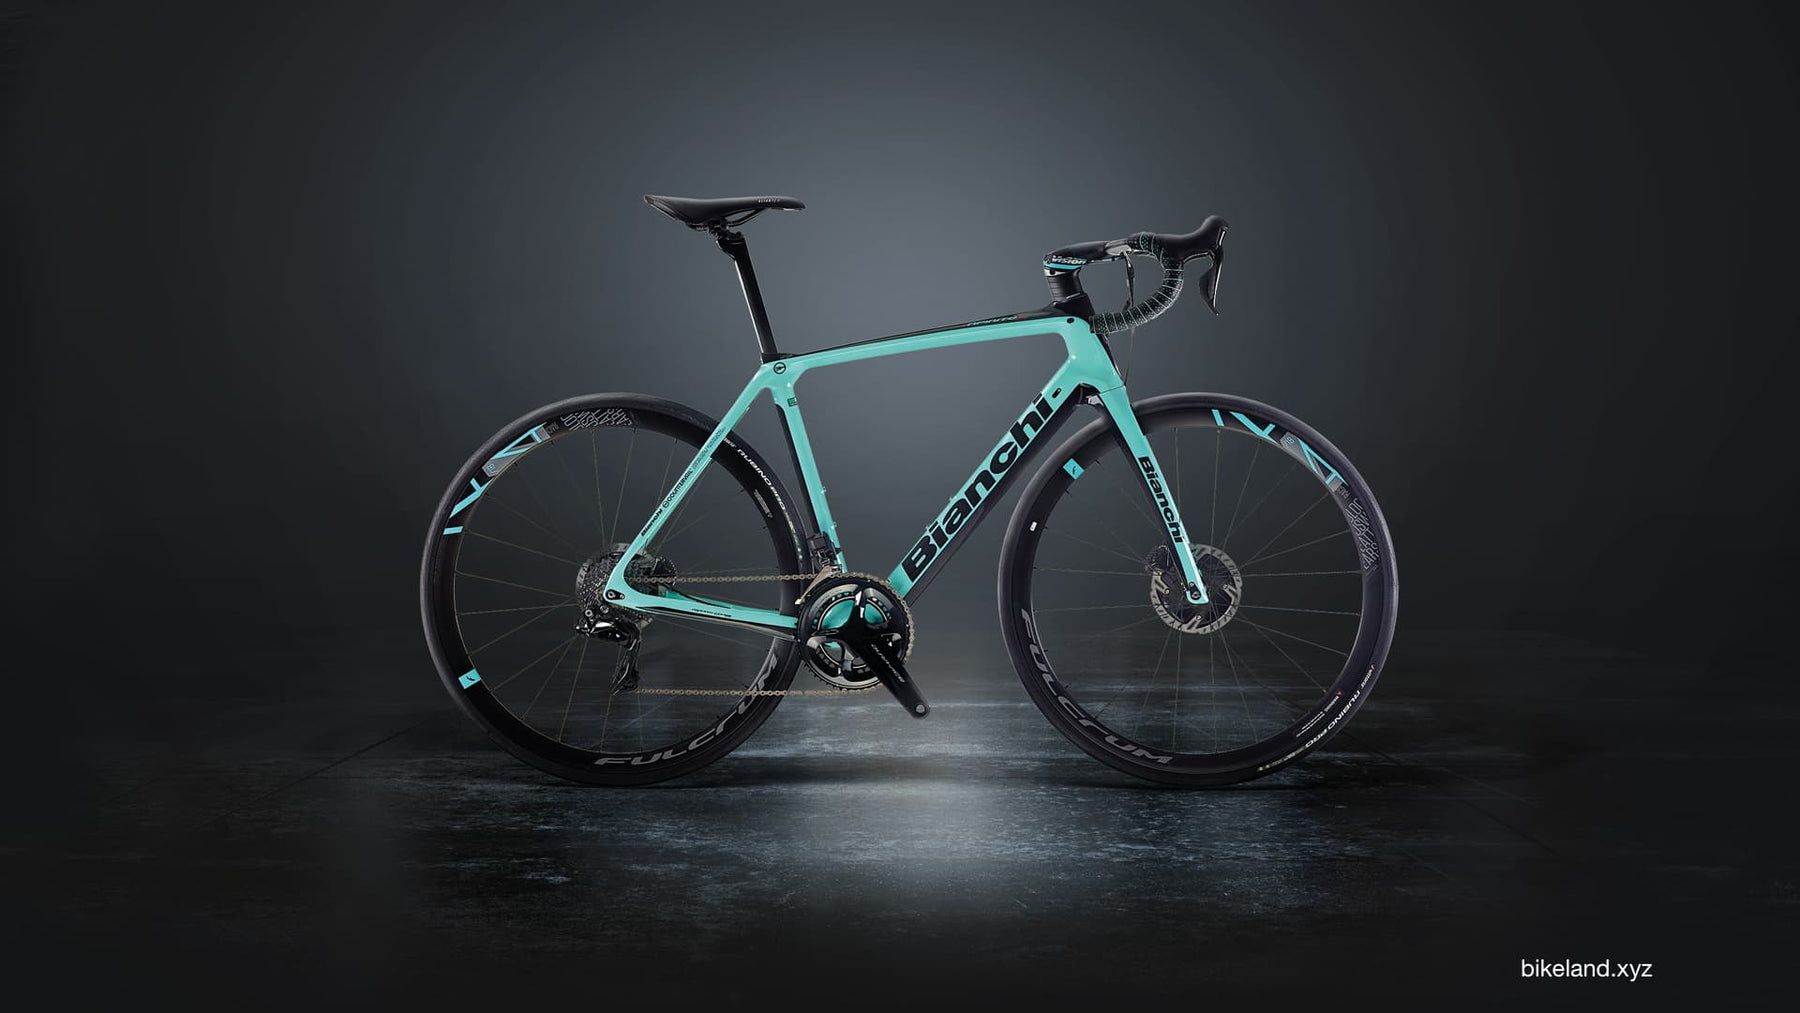 A beautiful picture of a Bianchi celeste color carbon fiber road bike.